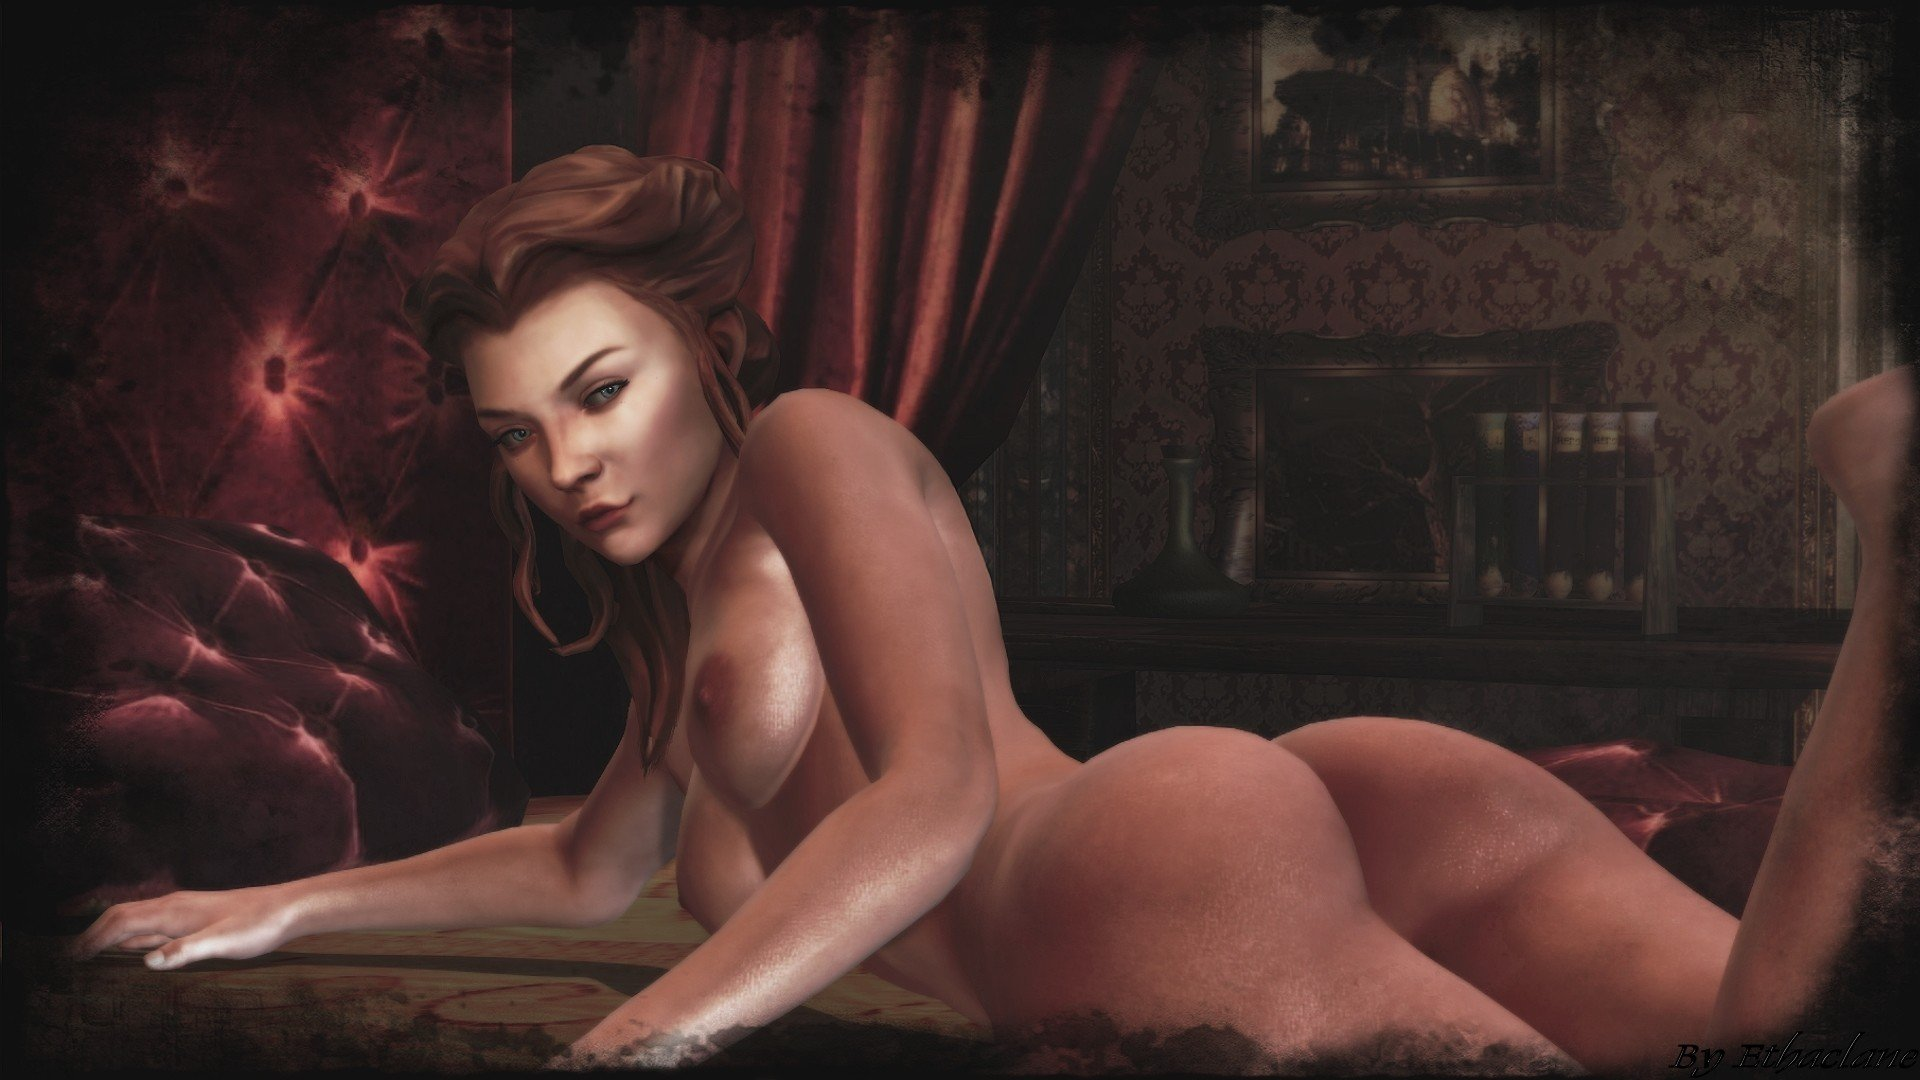 Game of thrones porn game